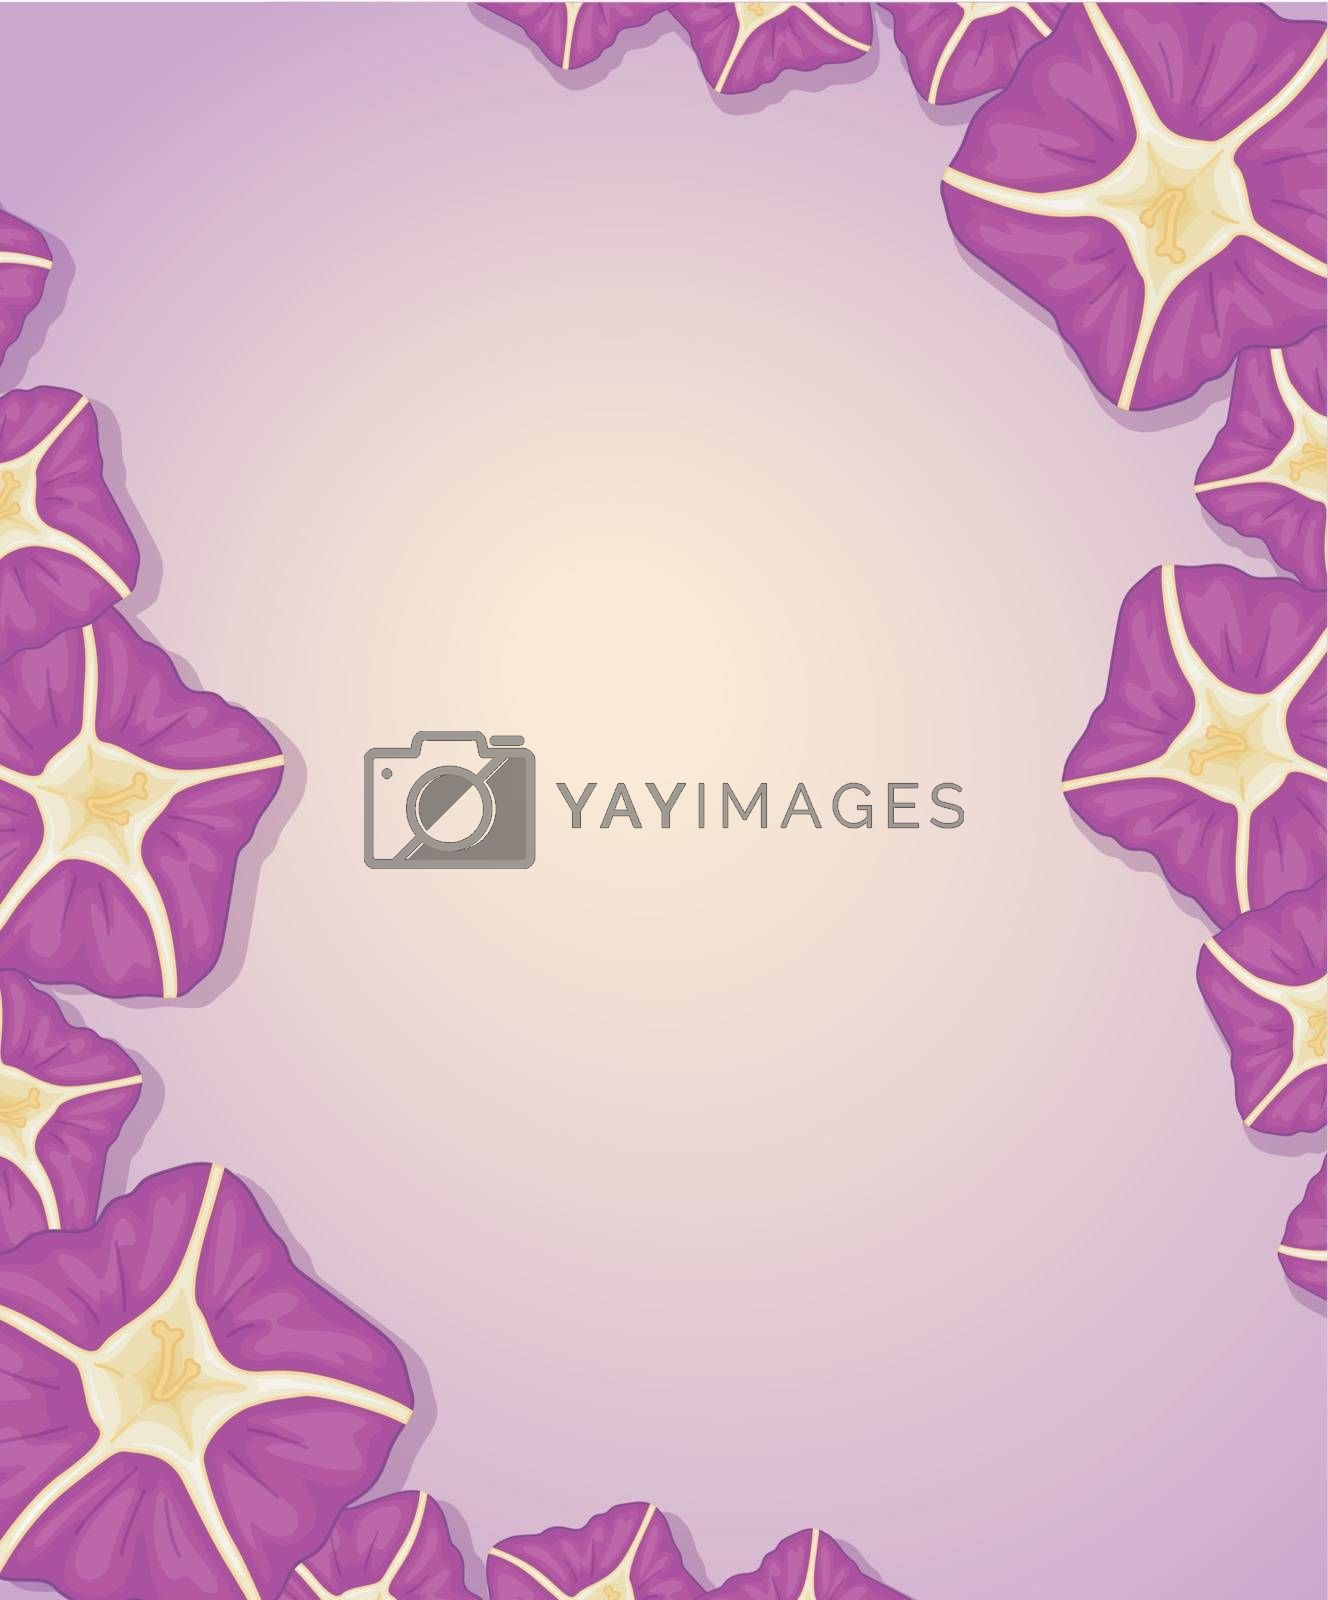 Blank template with a flower border